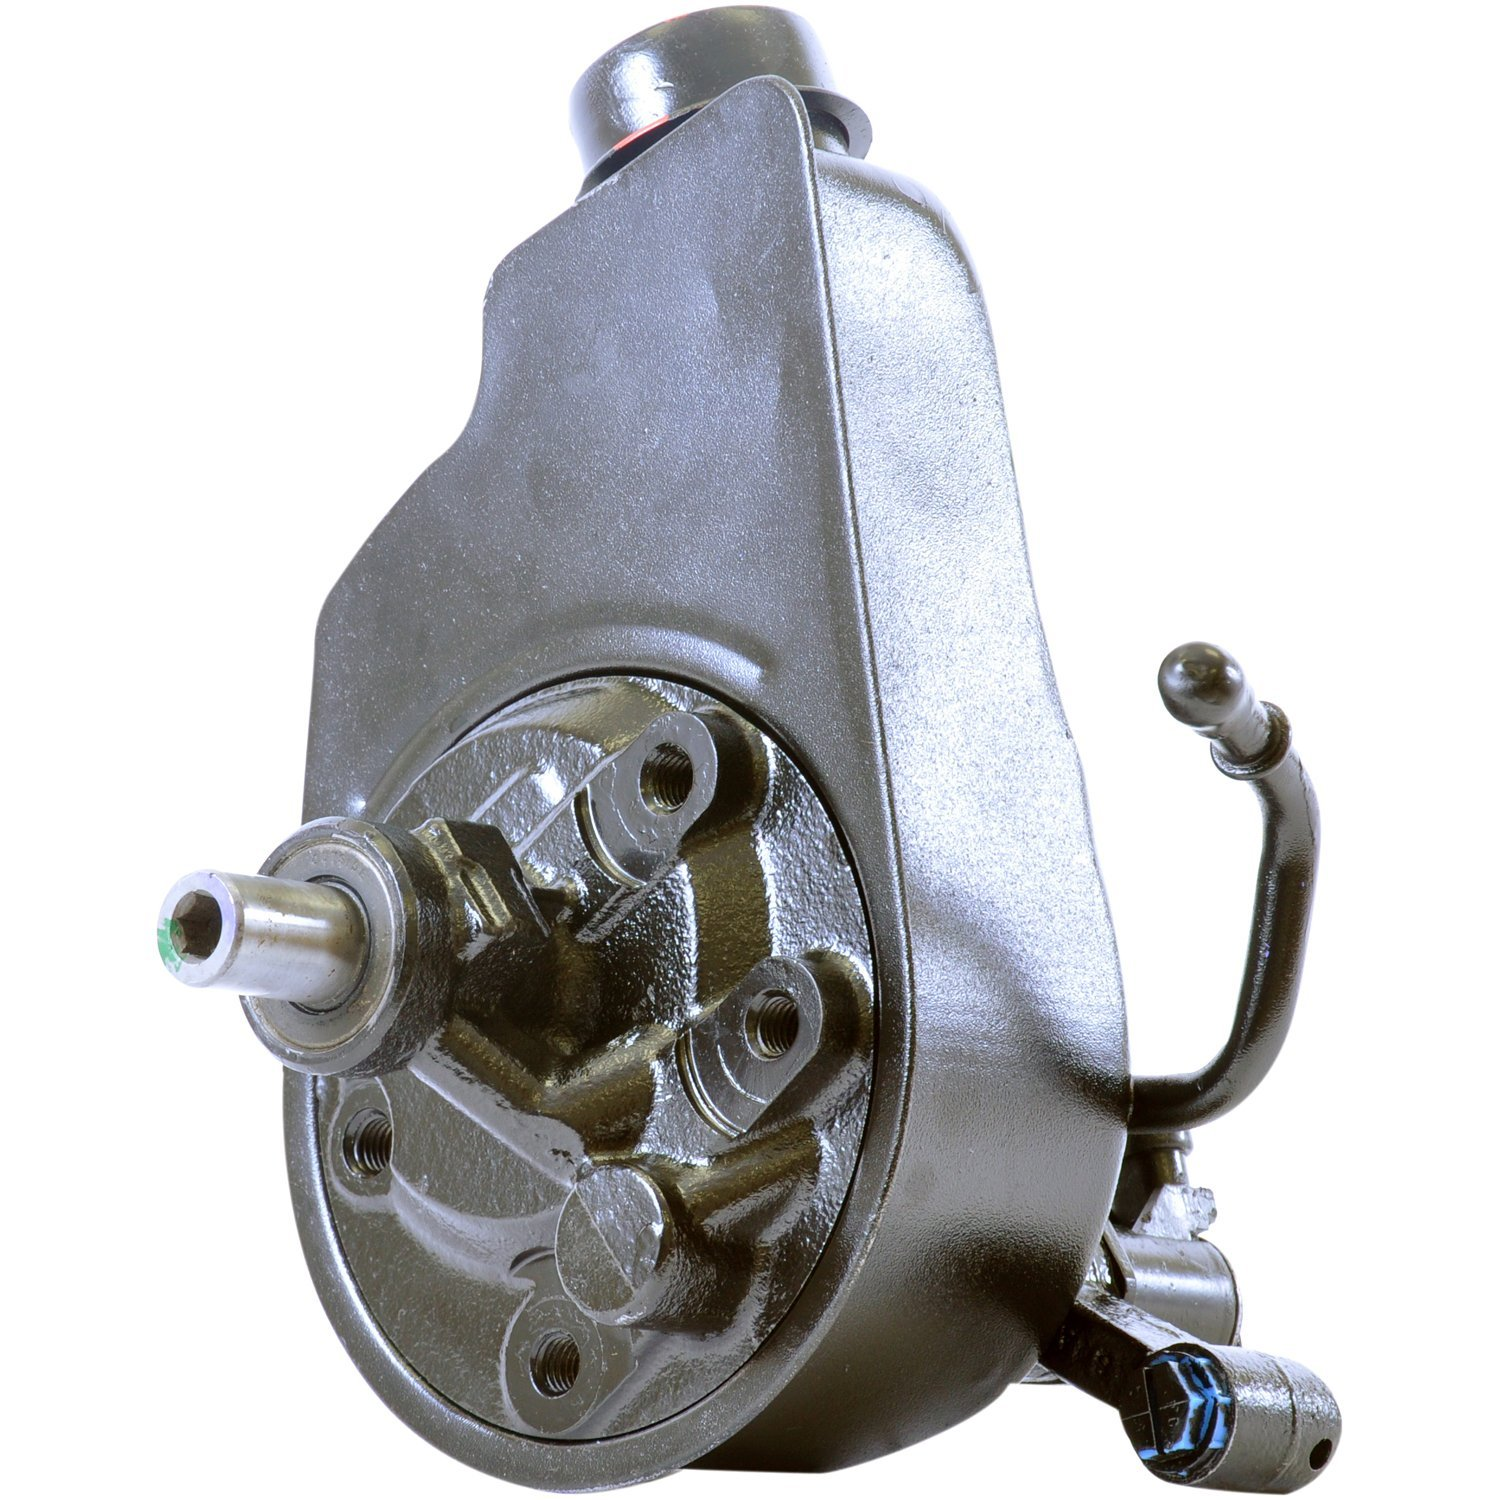 Remanufactured ACDelco 36P1386 Professional Power Steering Pump